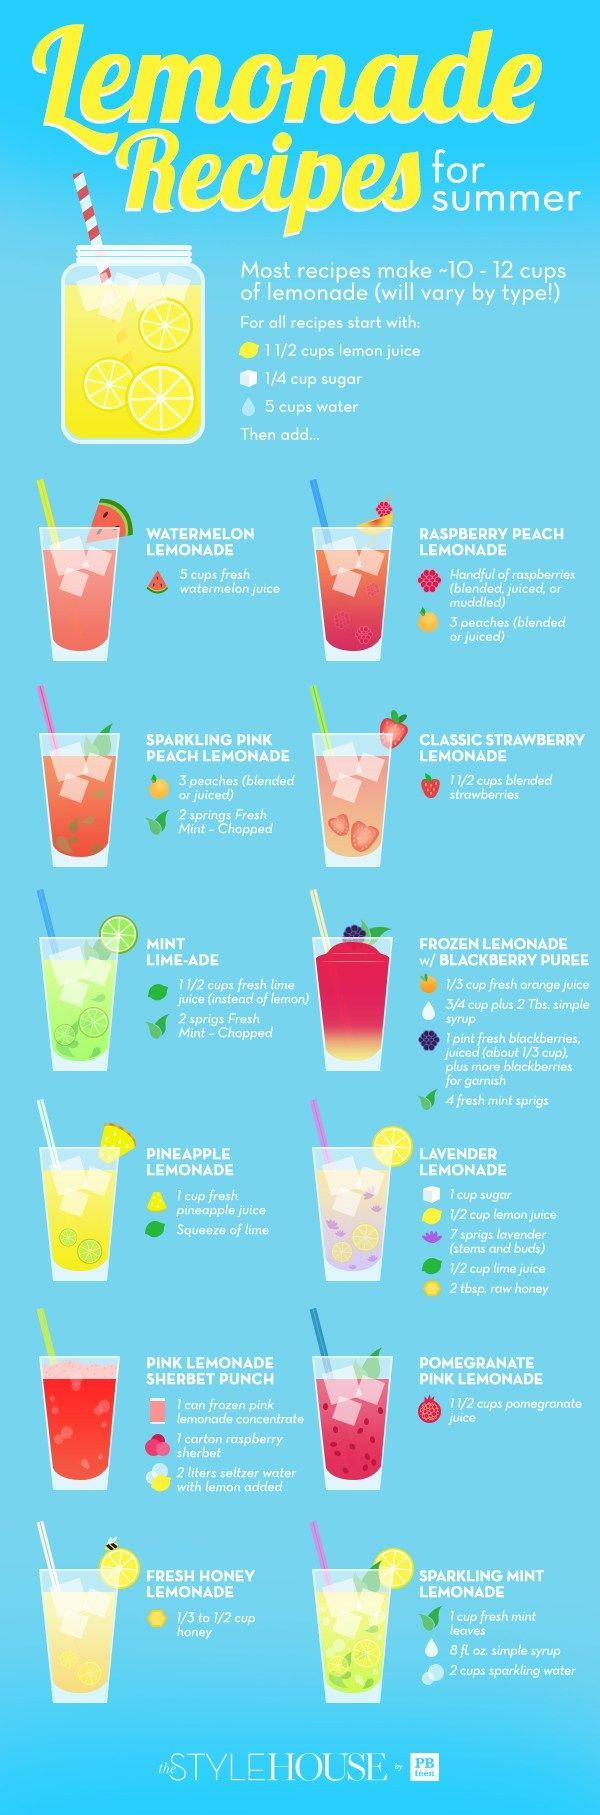 Lemonade Recipes for Summer ... I would probably make SUGAR FREE varieties.CHERIE